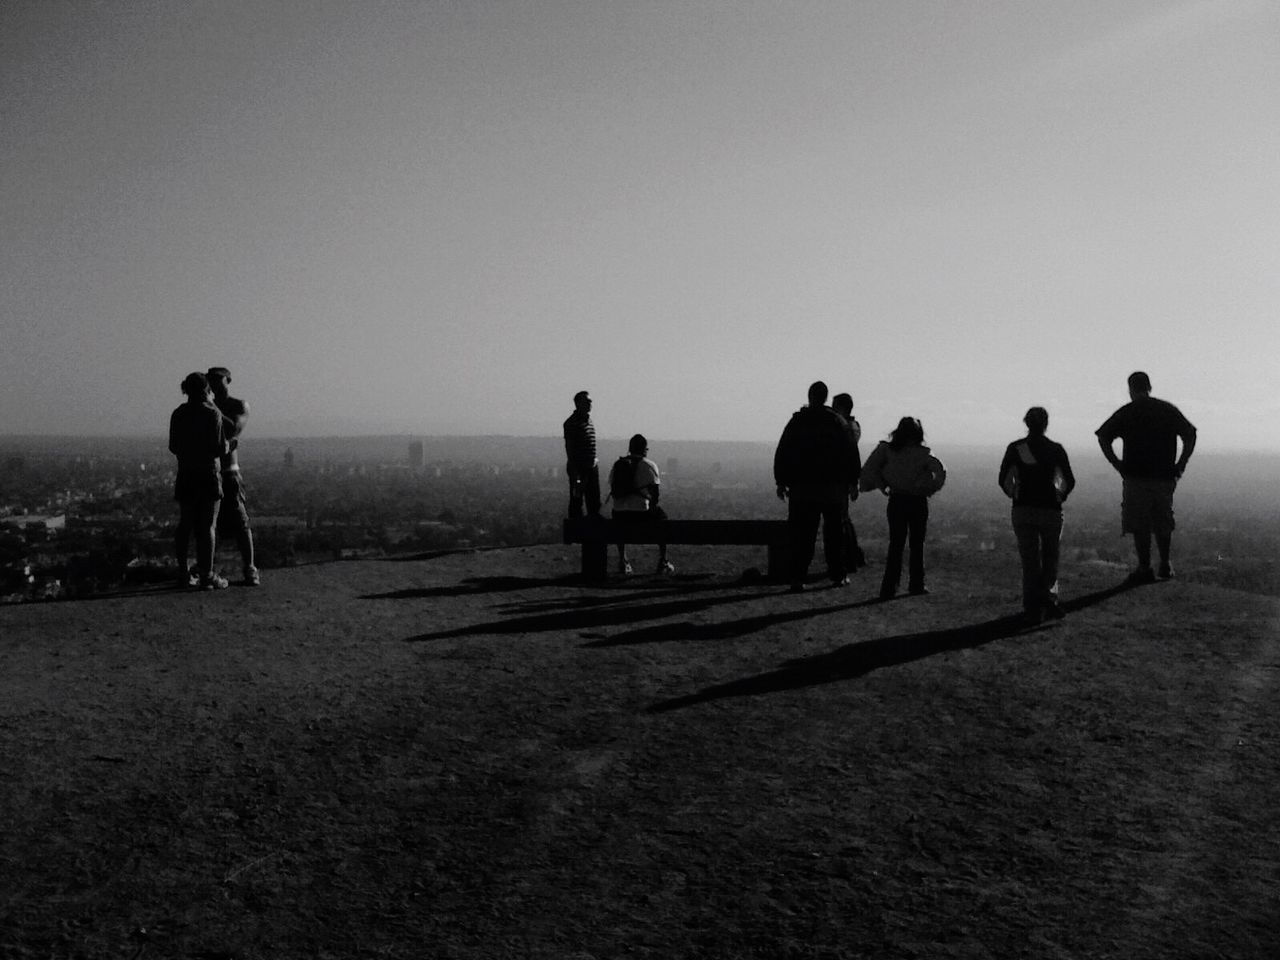 QVHoughPhoto Runyoncanyon Hollywood Hiking Losangeles Cityscapes Landscape Pacificocean Blackandwhite Vaguevisages IPhoneography IPhone4s